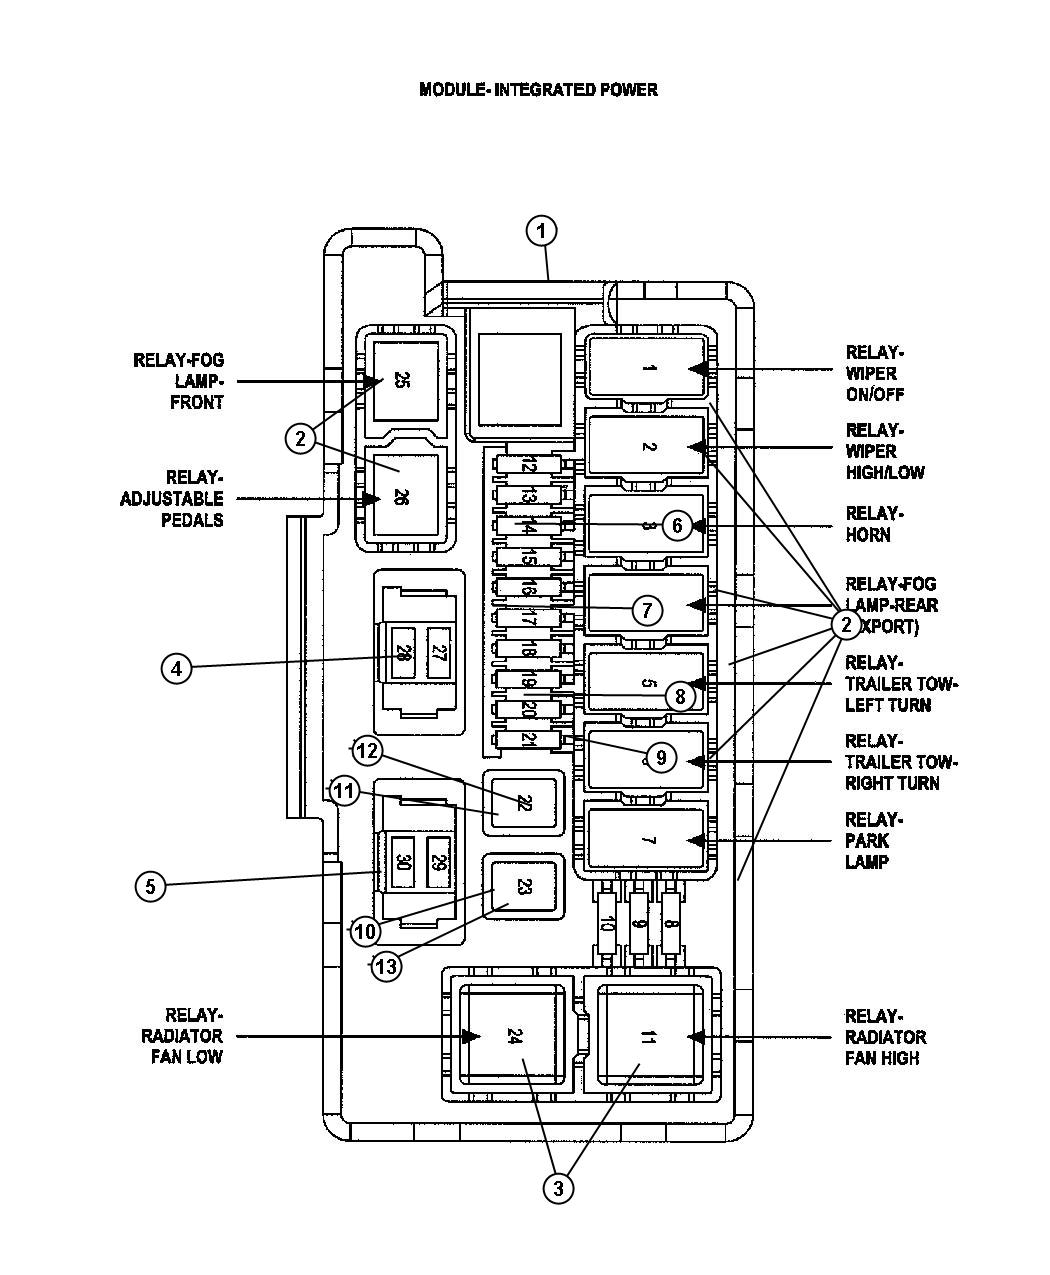 2004 jeep wrangler stereo wiring diagram images jeep diagram jeep commander stereo wiring diagram